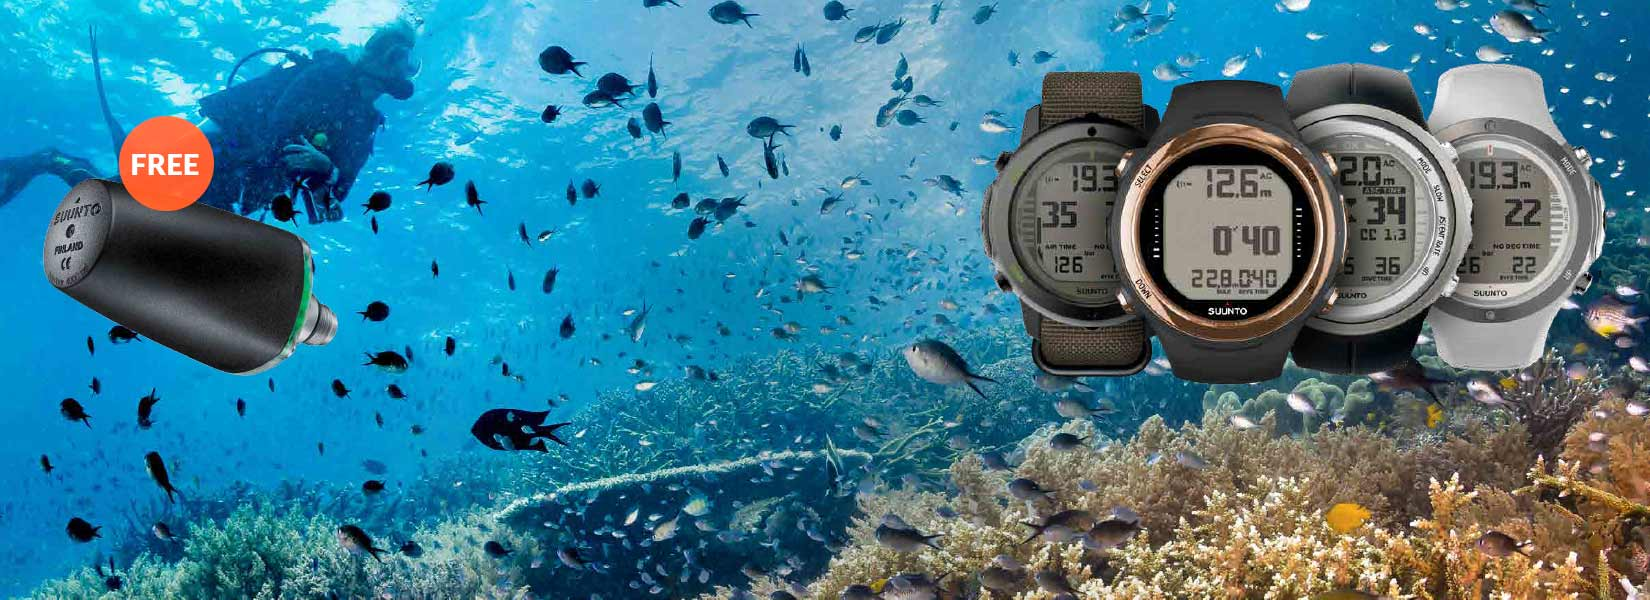 Get a free Transmitter with any purchase of Suunto Serie D